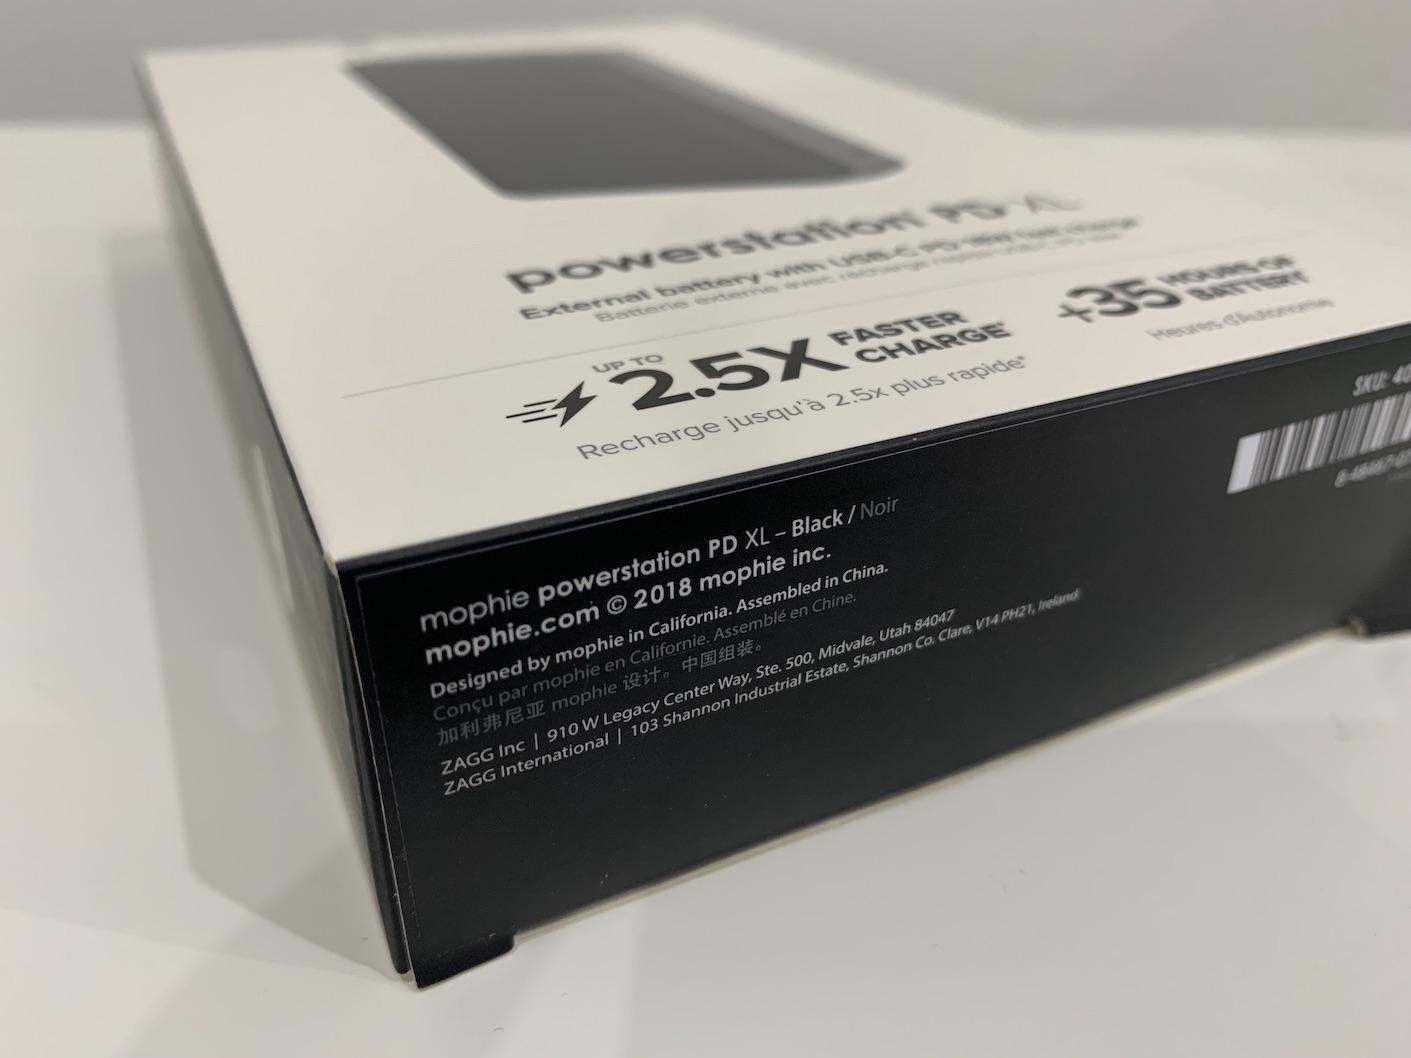 mophie_powerstation_pd11